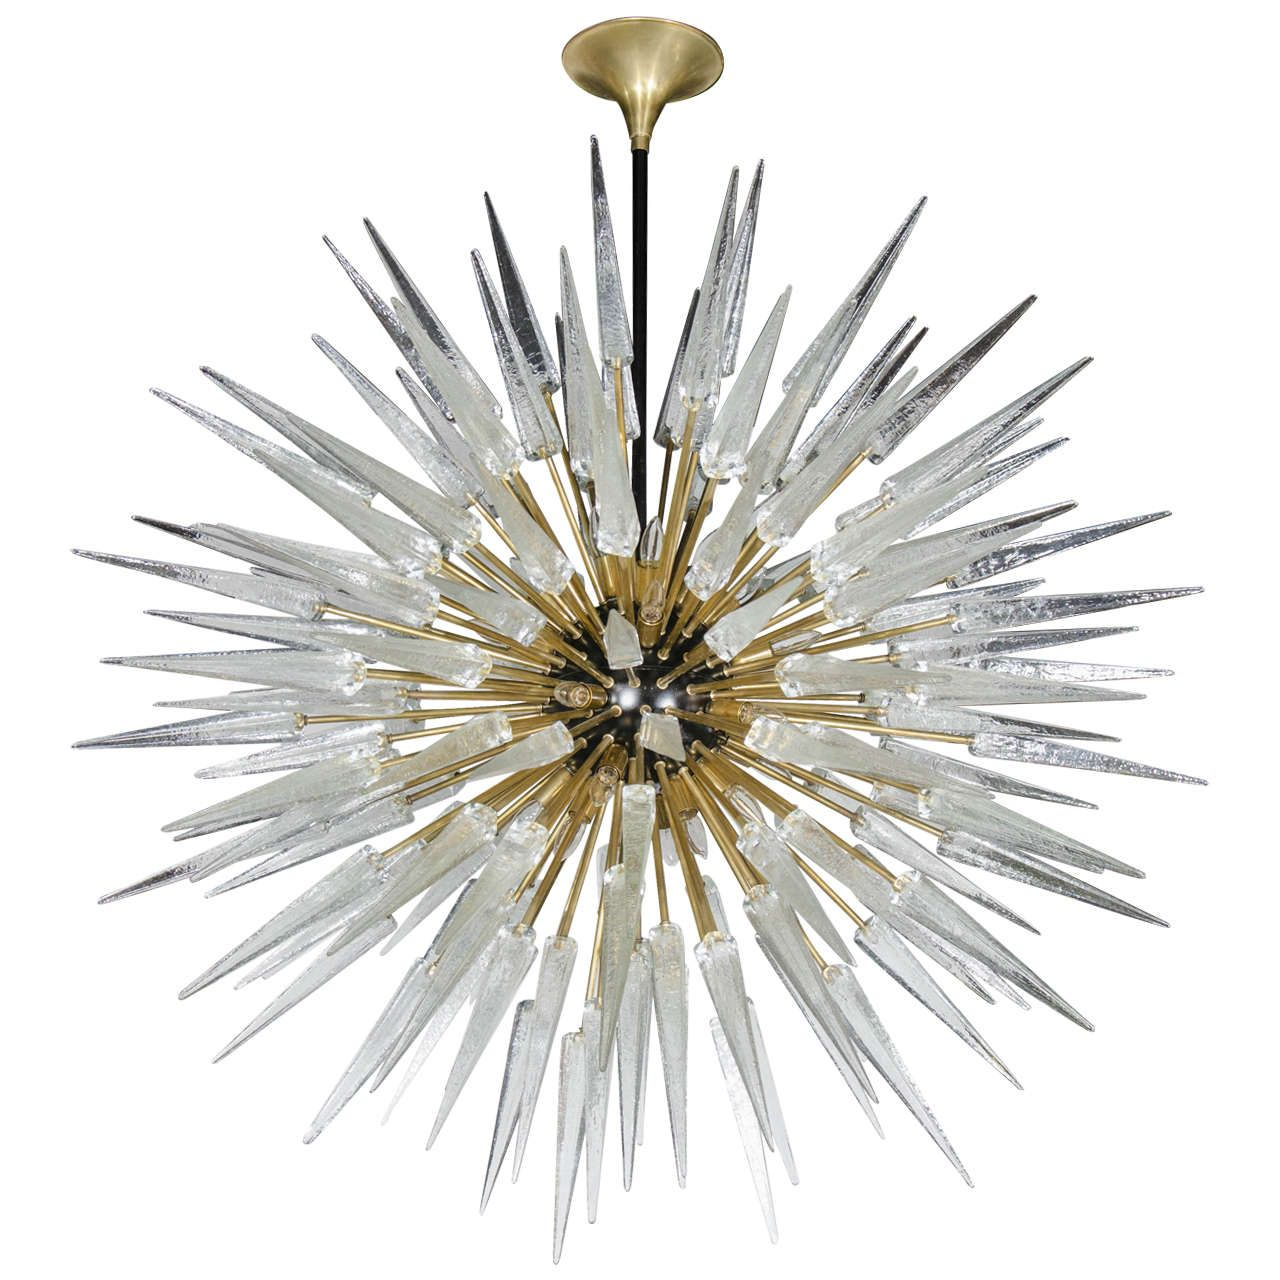 impressive and monumental murano glass spiked starburst chandelier - Starburst Chandelier